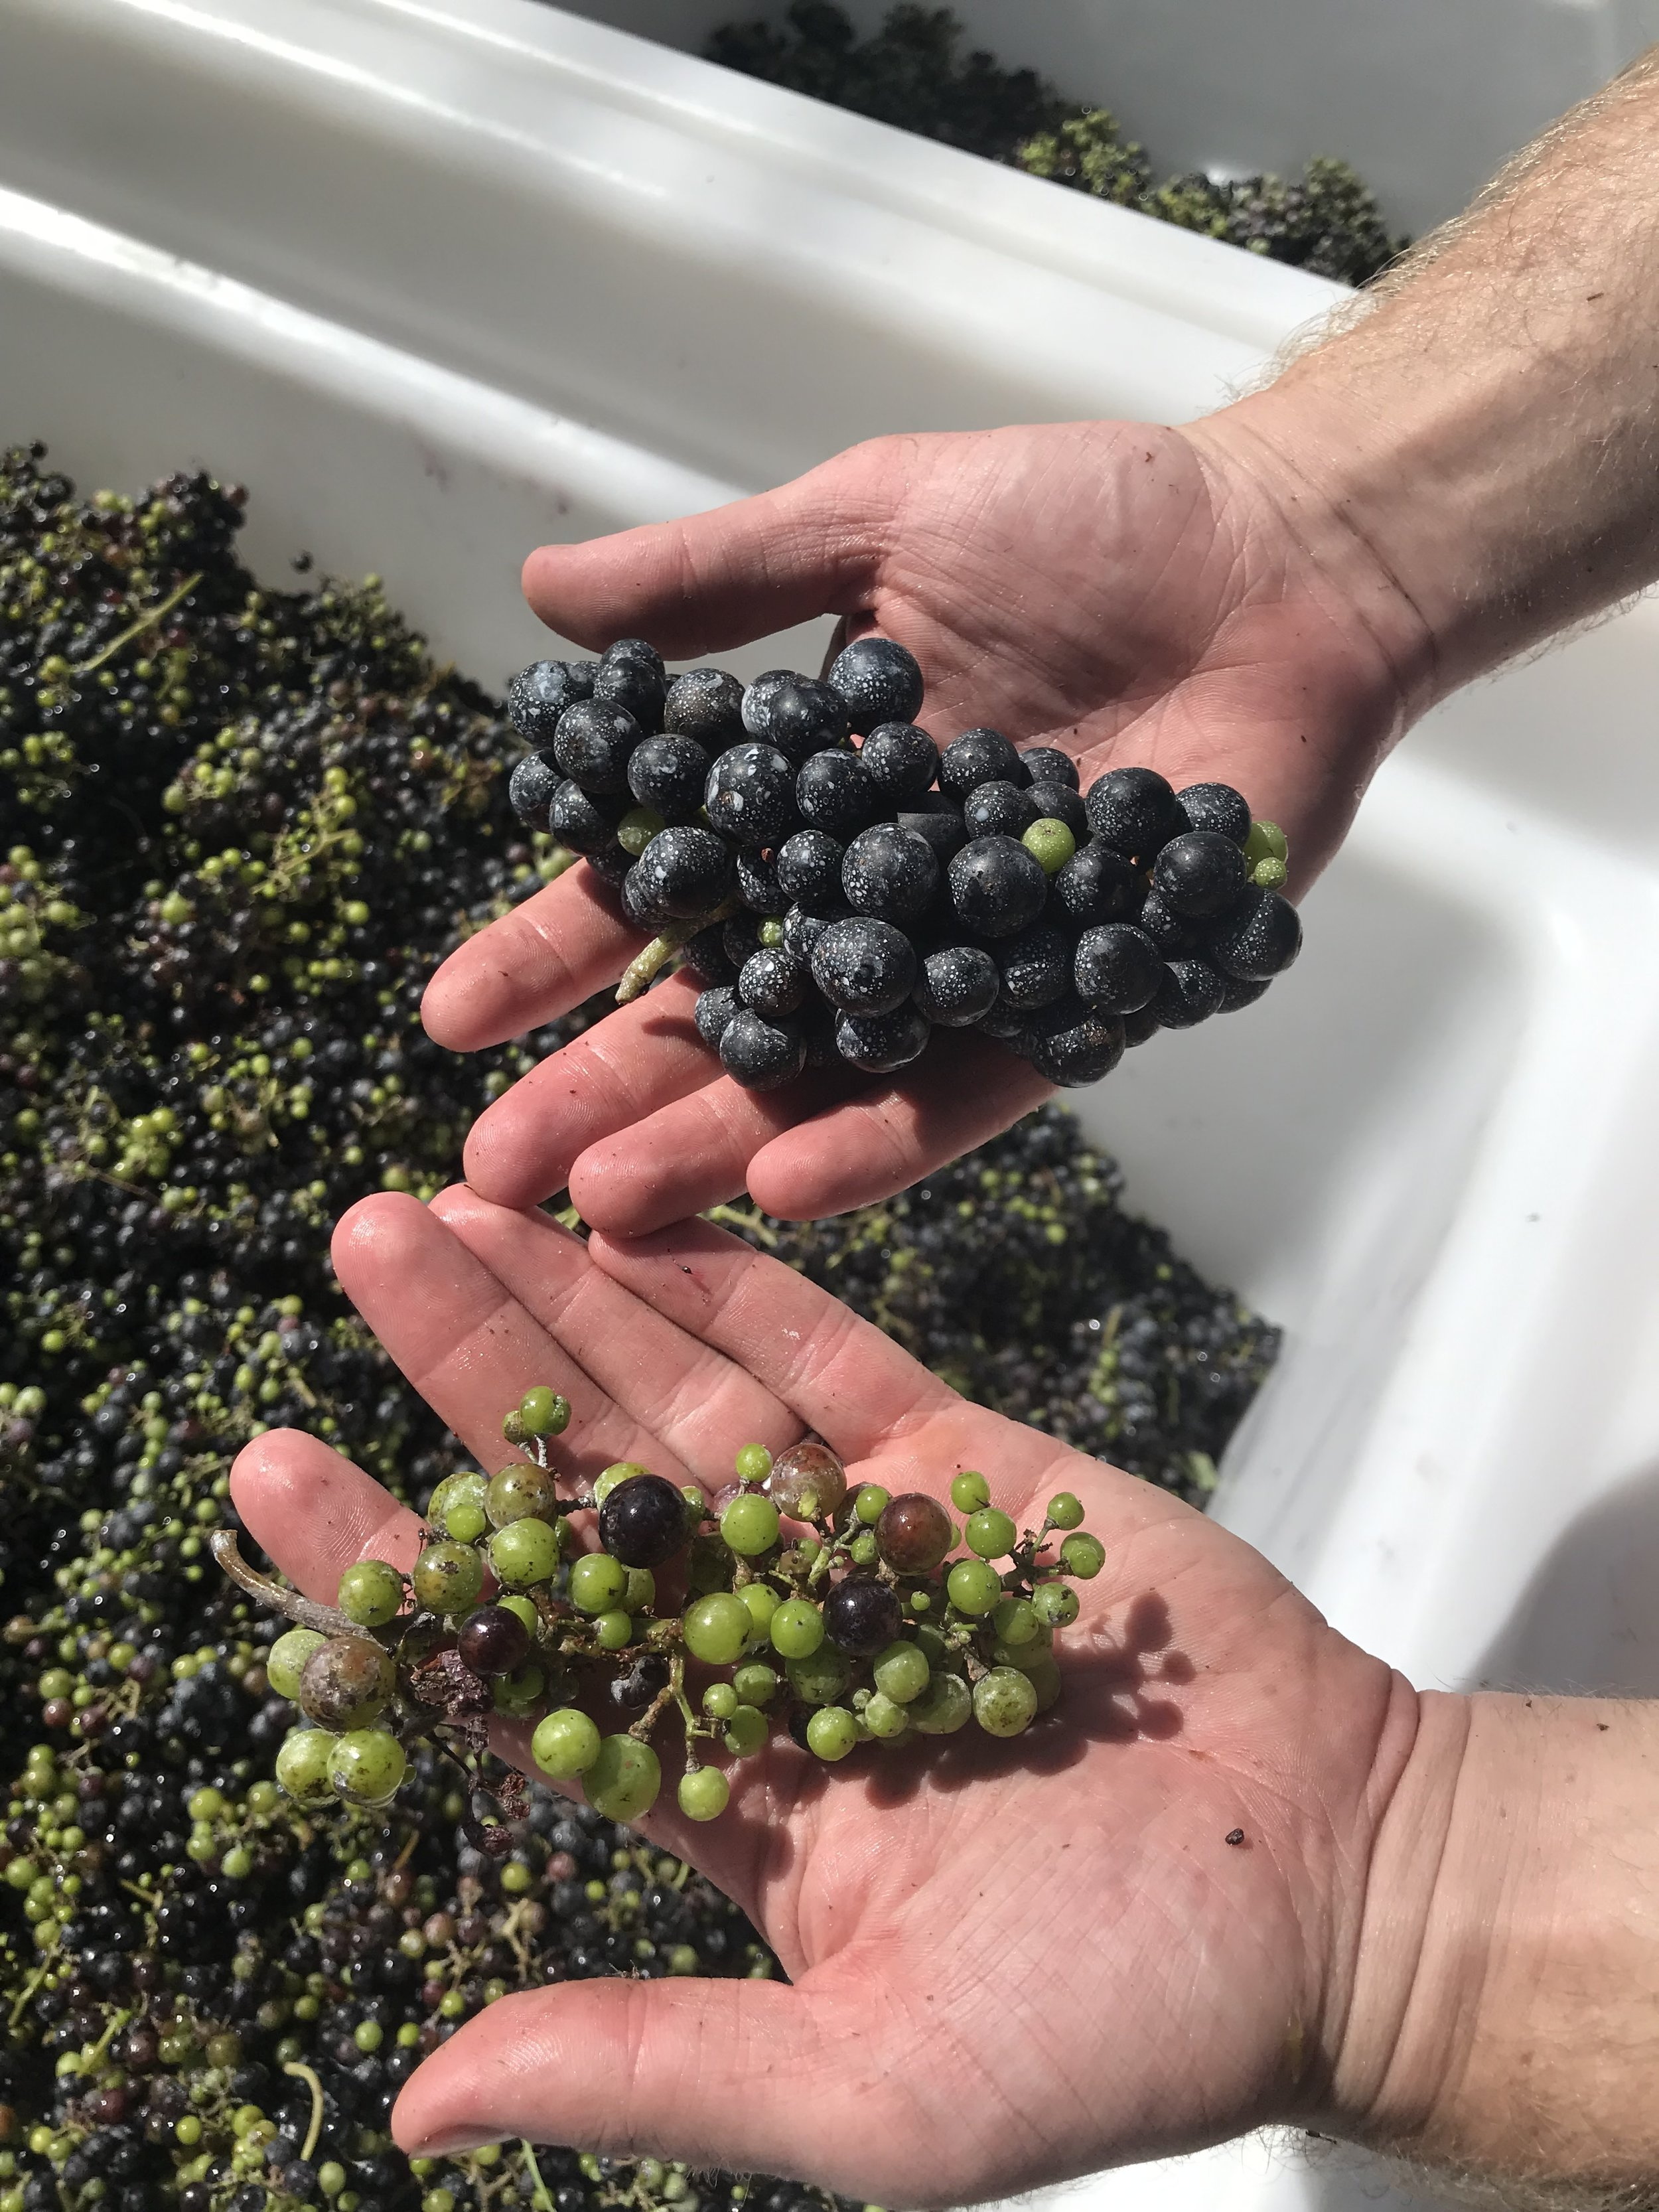 We had a lot of green fruit when we harvested. We got a lot of strange looks from onlookers while we were crushing the fruit. Even these clusters that were almost 100% green had flavors that we wanted.